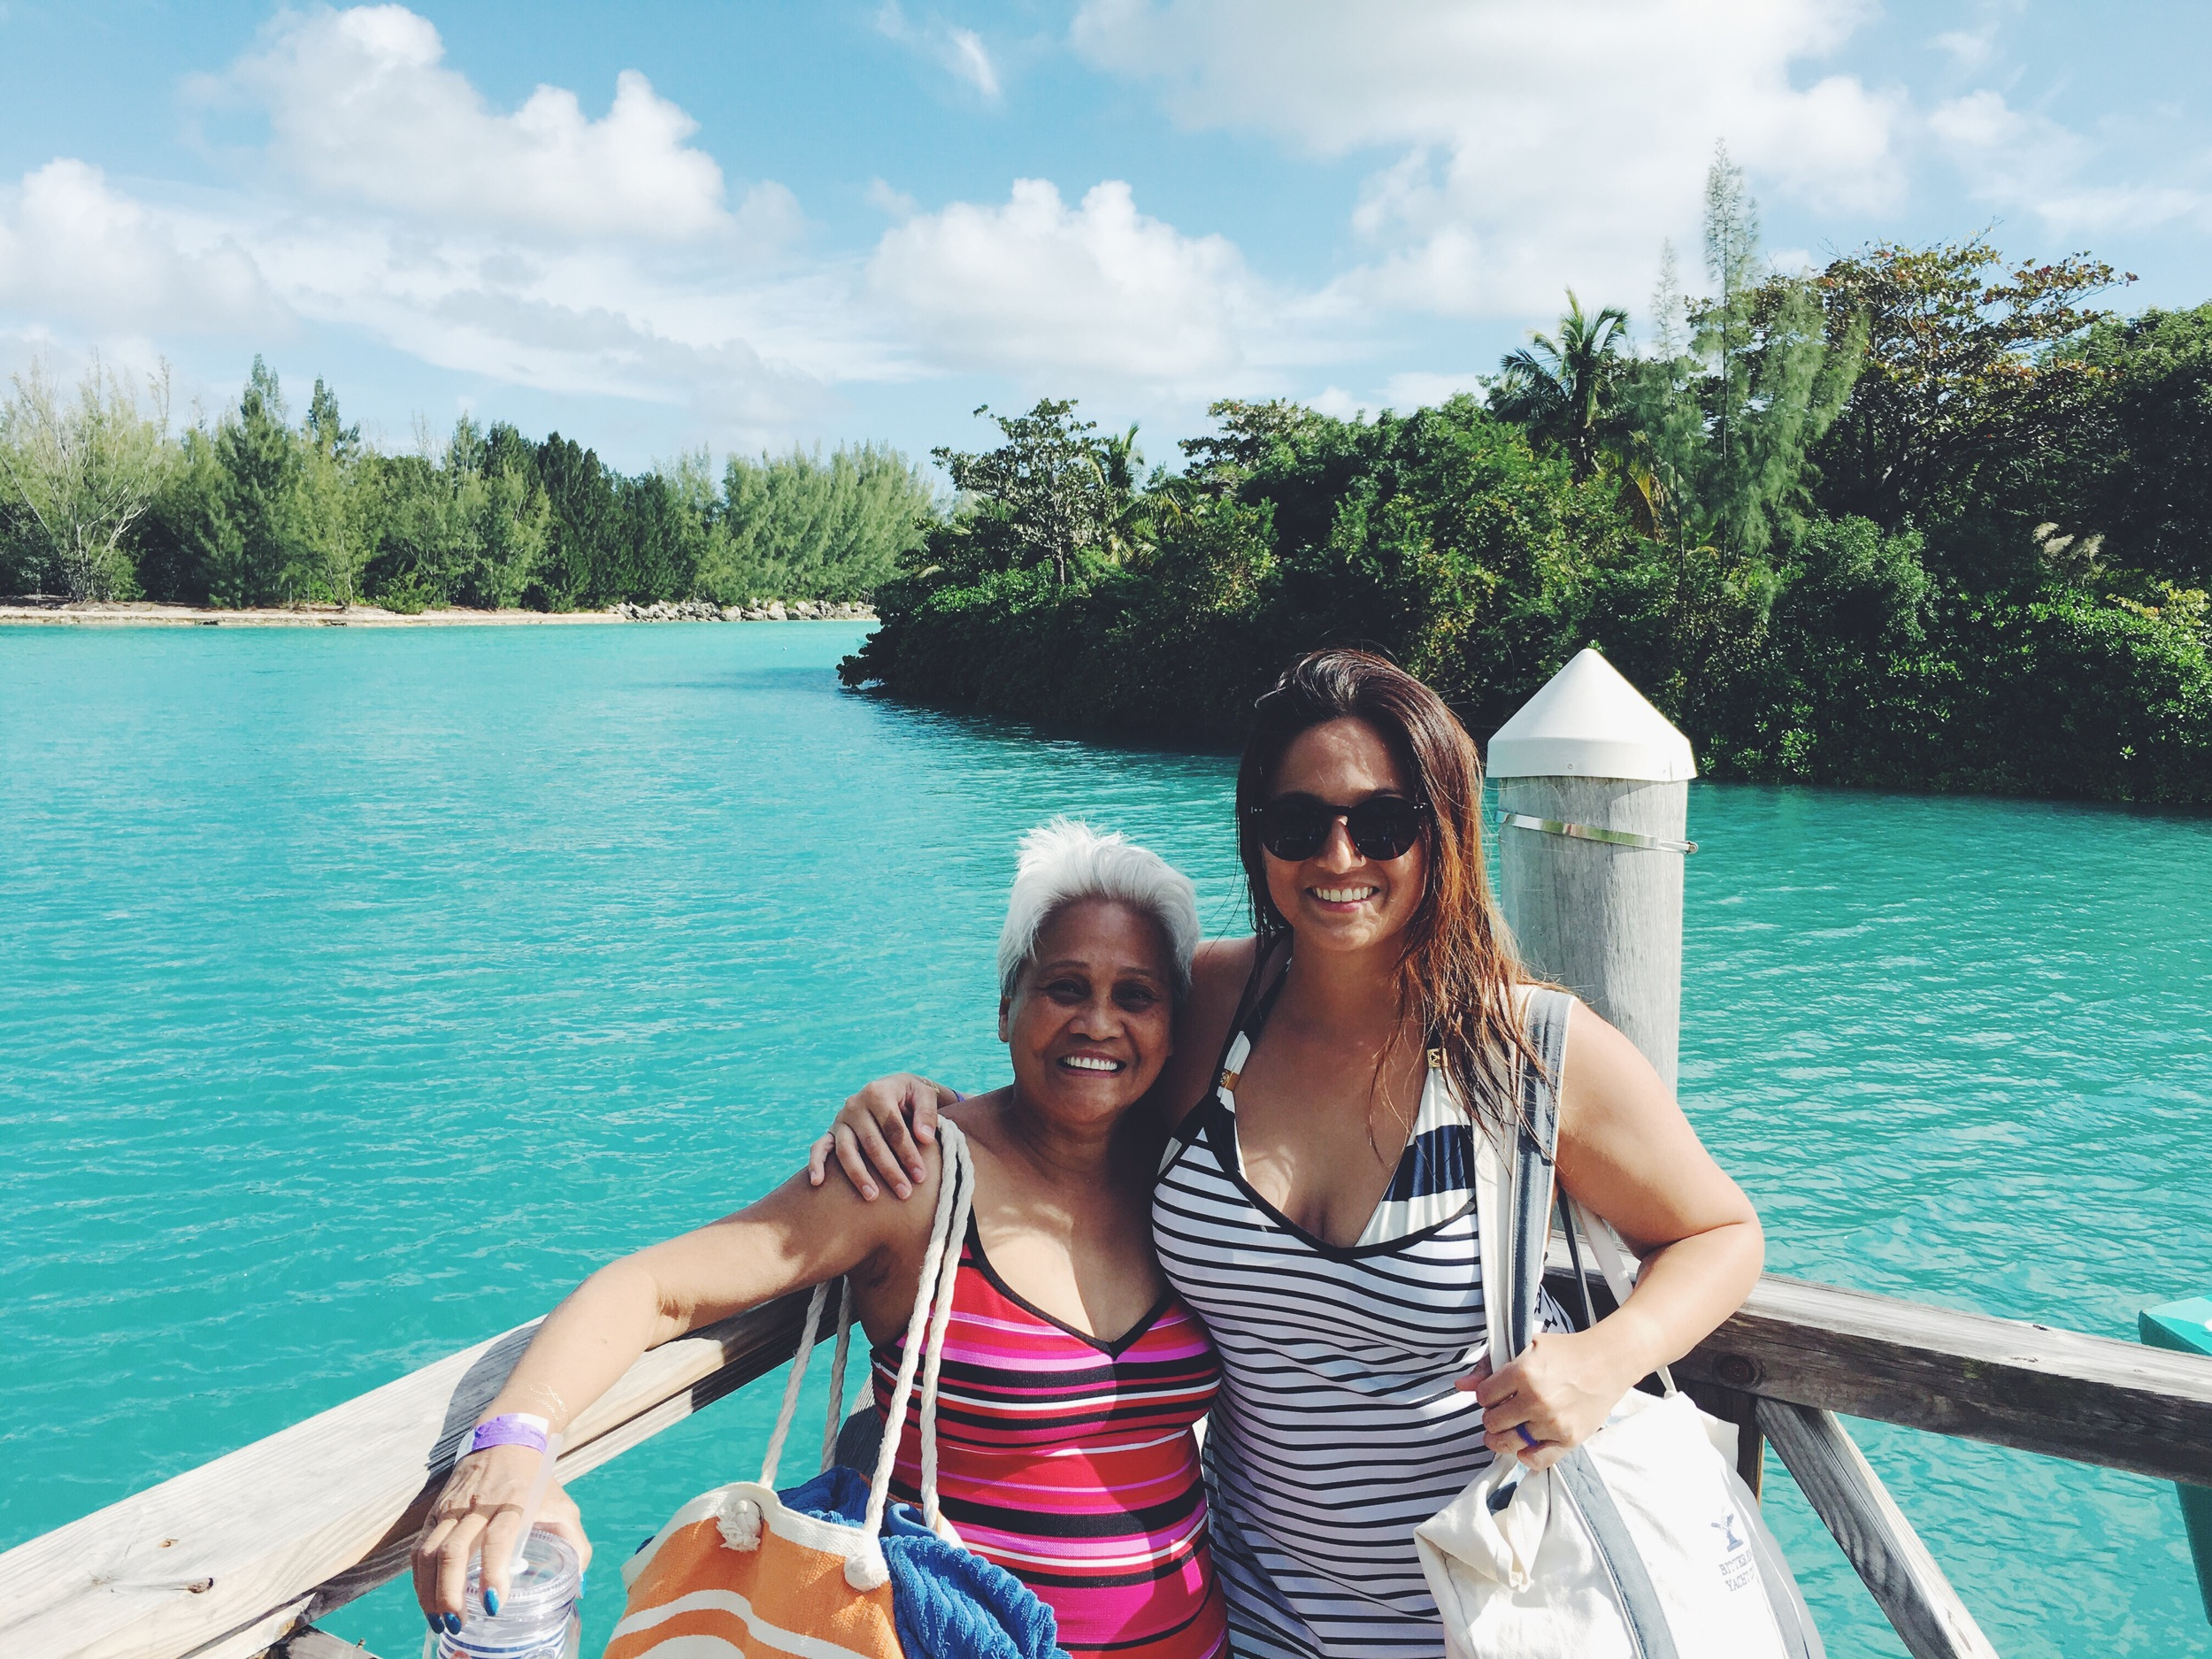 Mom & Me after our Dolphin Swim excursion in Freeport, Bahamas